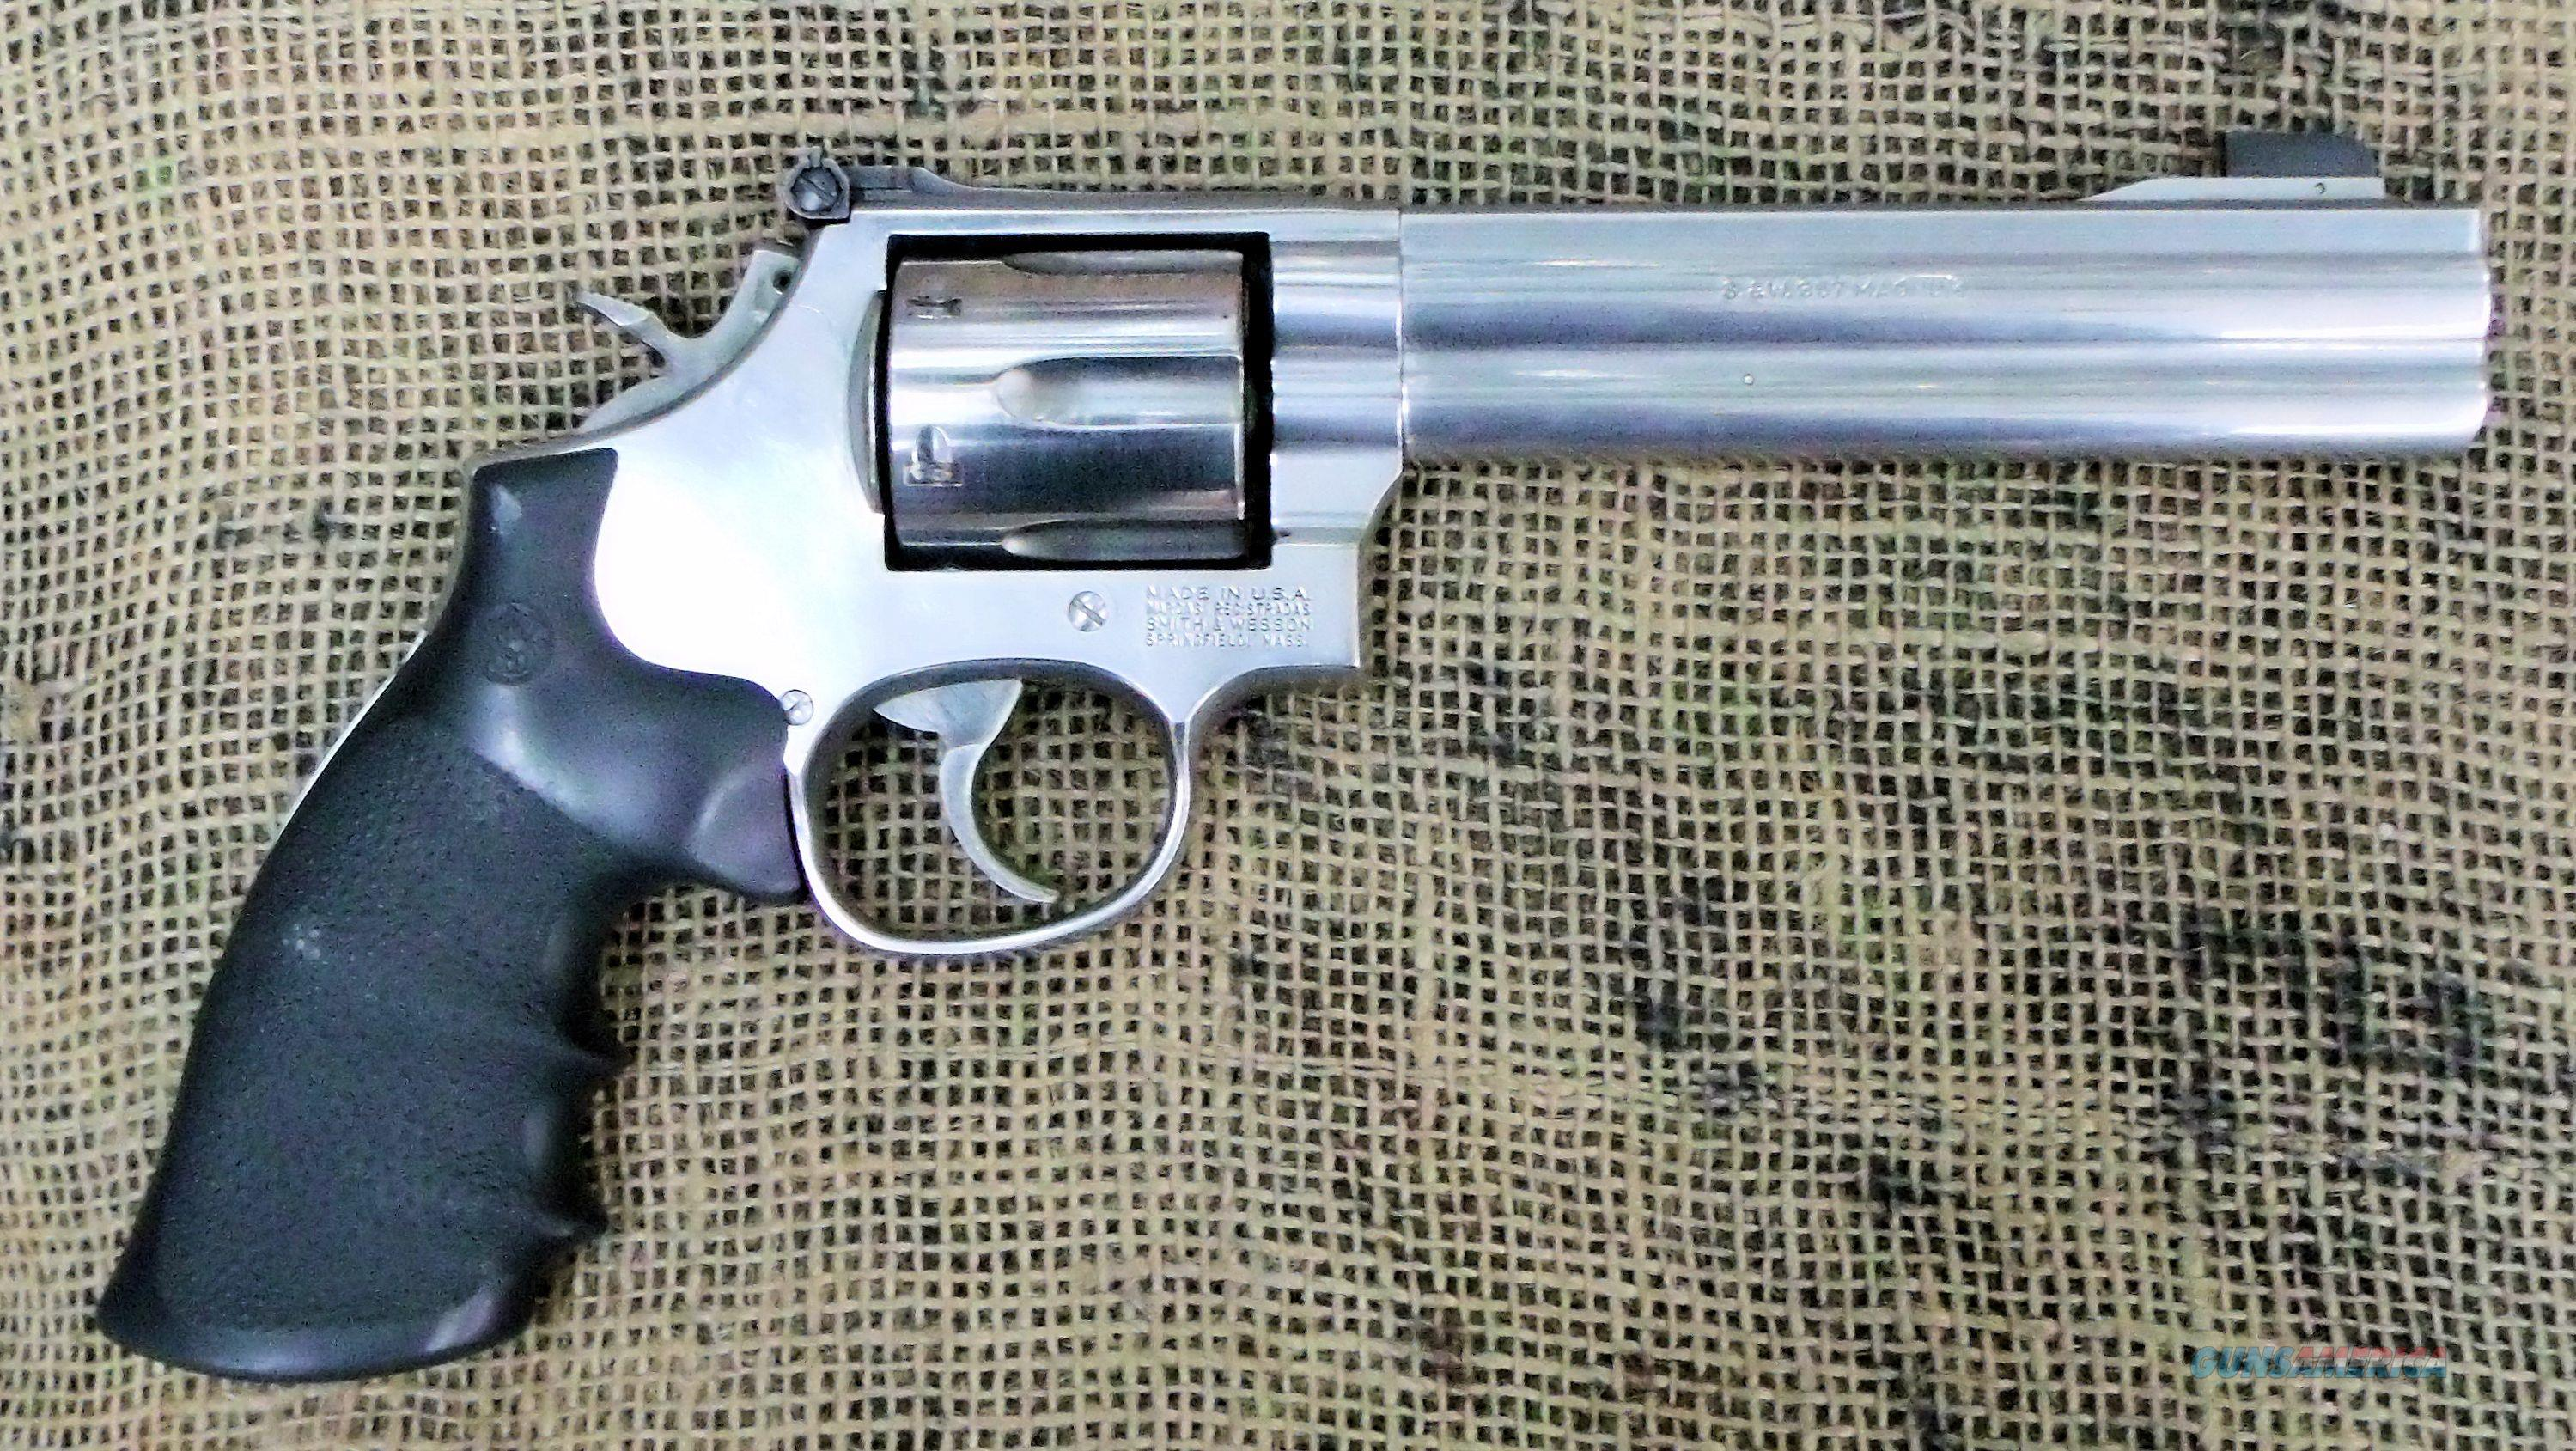 357 686 Wesson Ported Smith And